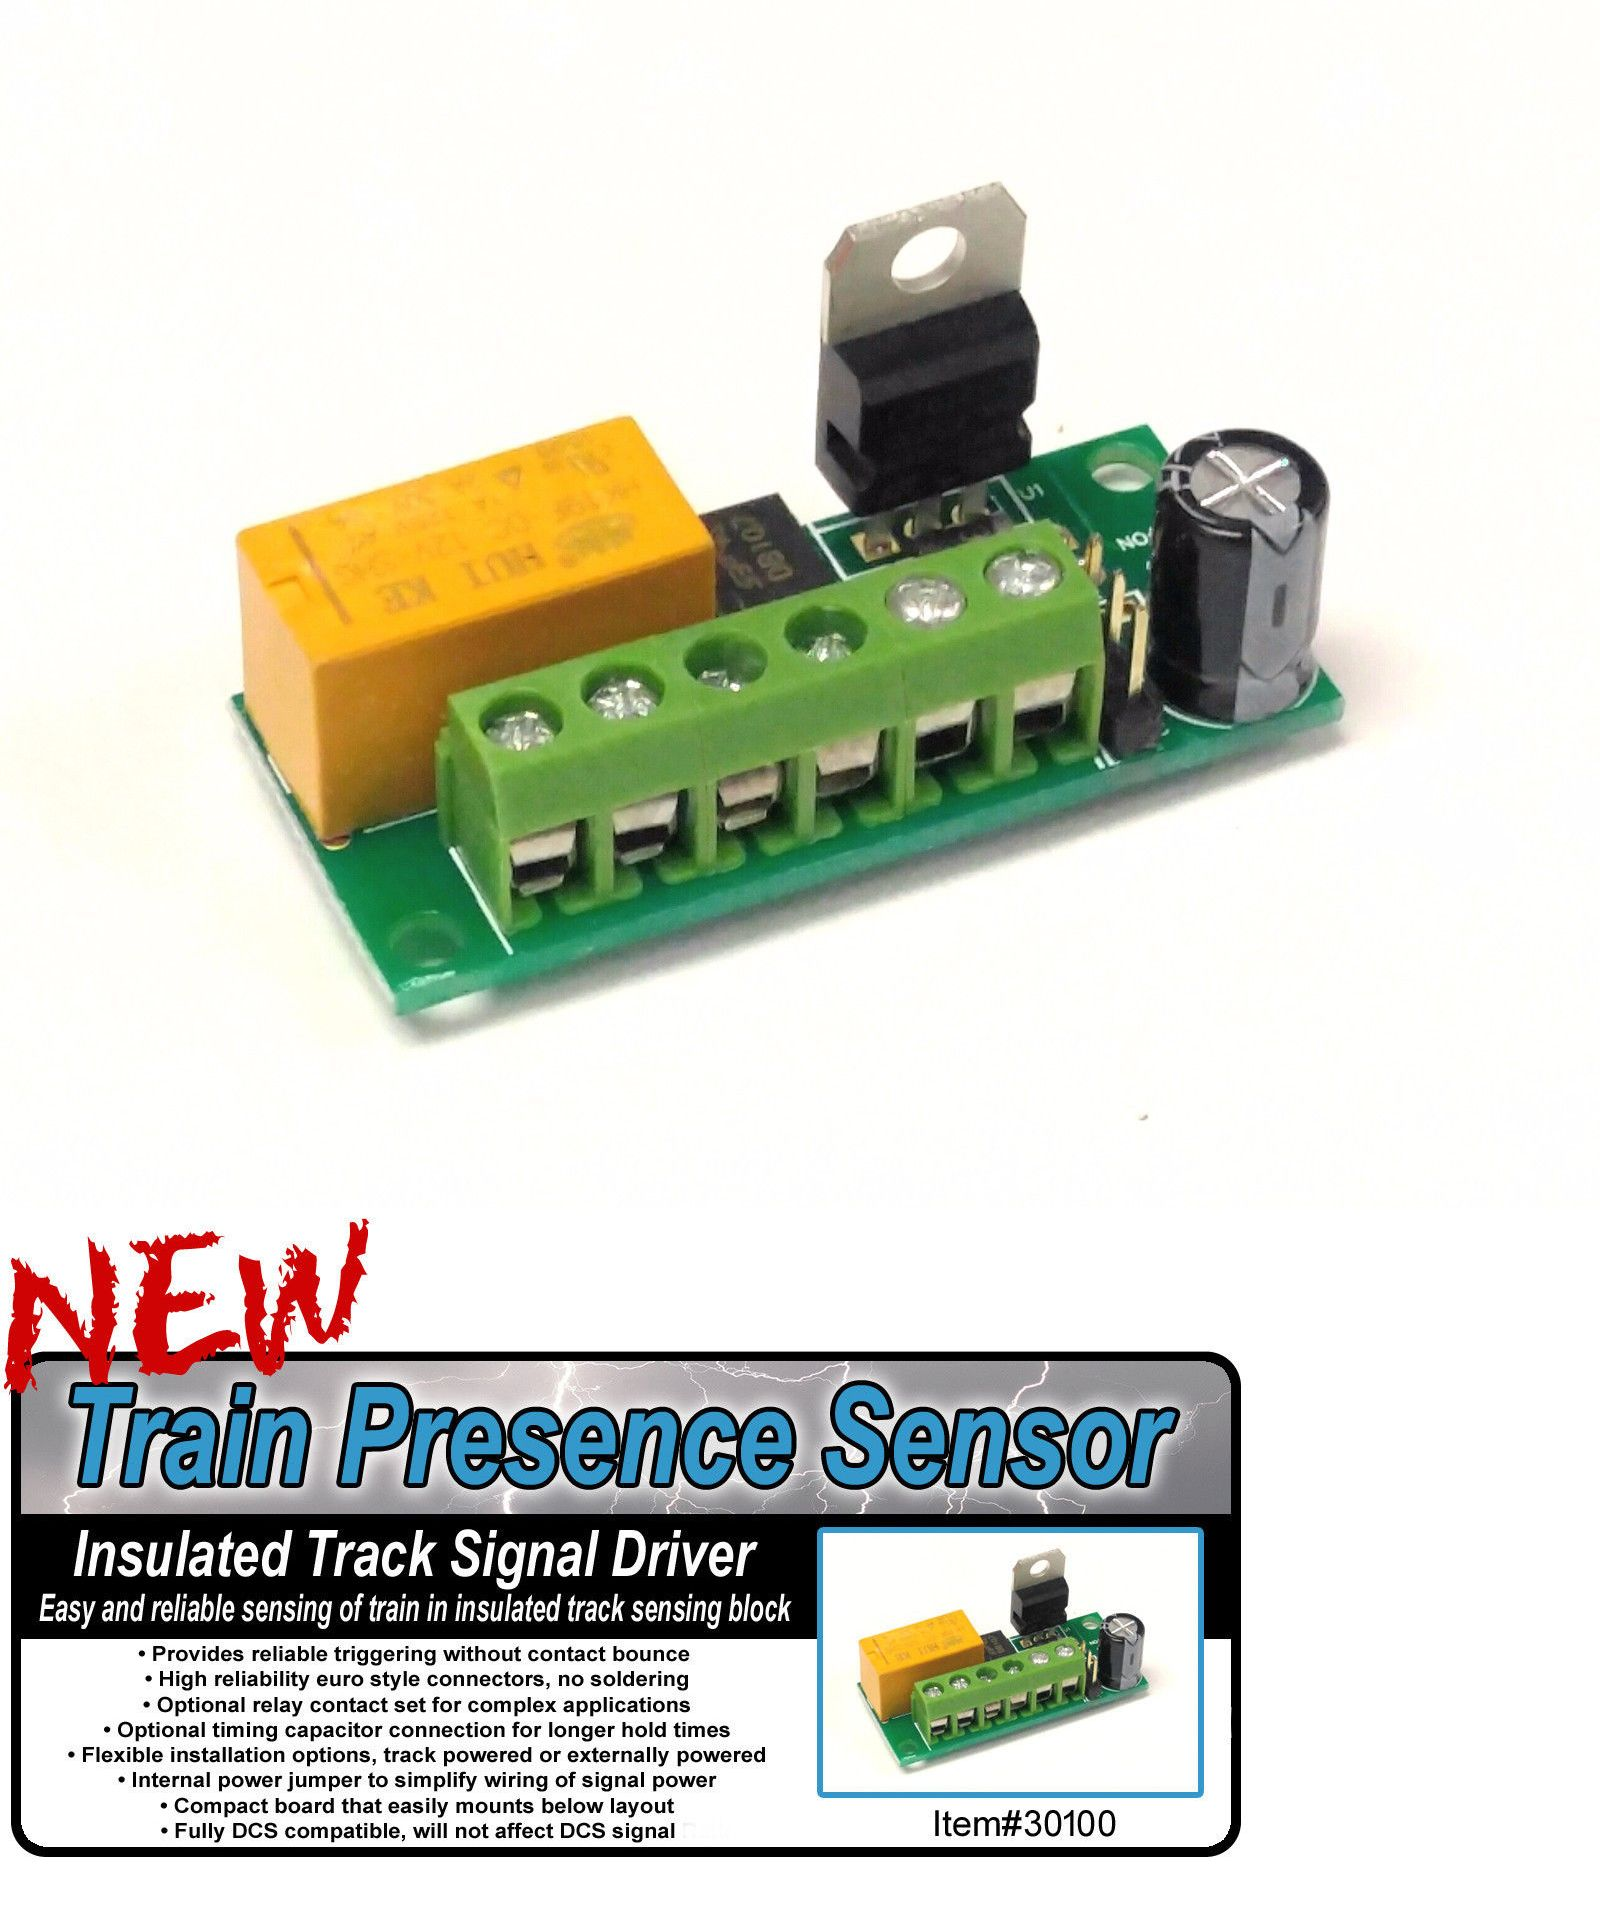 medium resolution of parts and spares 180251 30100 train presence sensor for insulated track o gauge buy it now only 29 99 on ebay parts spares train presence